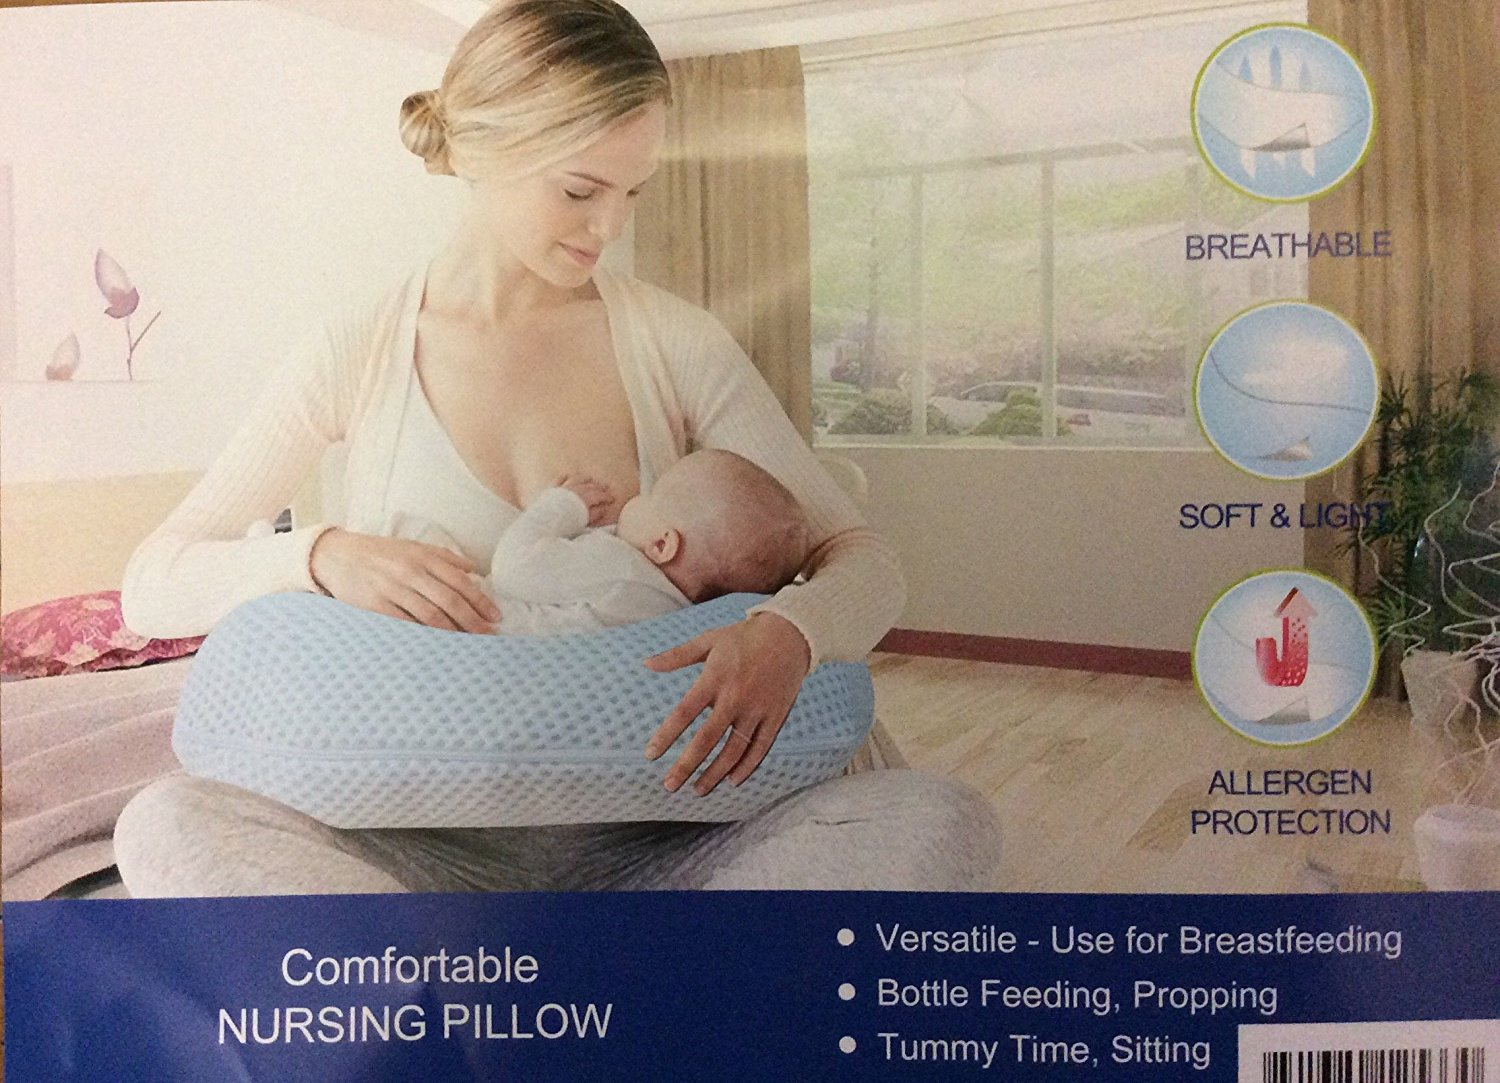 NEW COMFORTABLE NURSERY PILLOW FOR MON AND BABY SOFT AND LIGTH,ALLERGEN PROTECTED,ESPECIALLY FOR BREASTFEEDING,BOTTLE FEEDING PROPPING